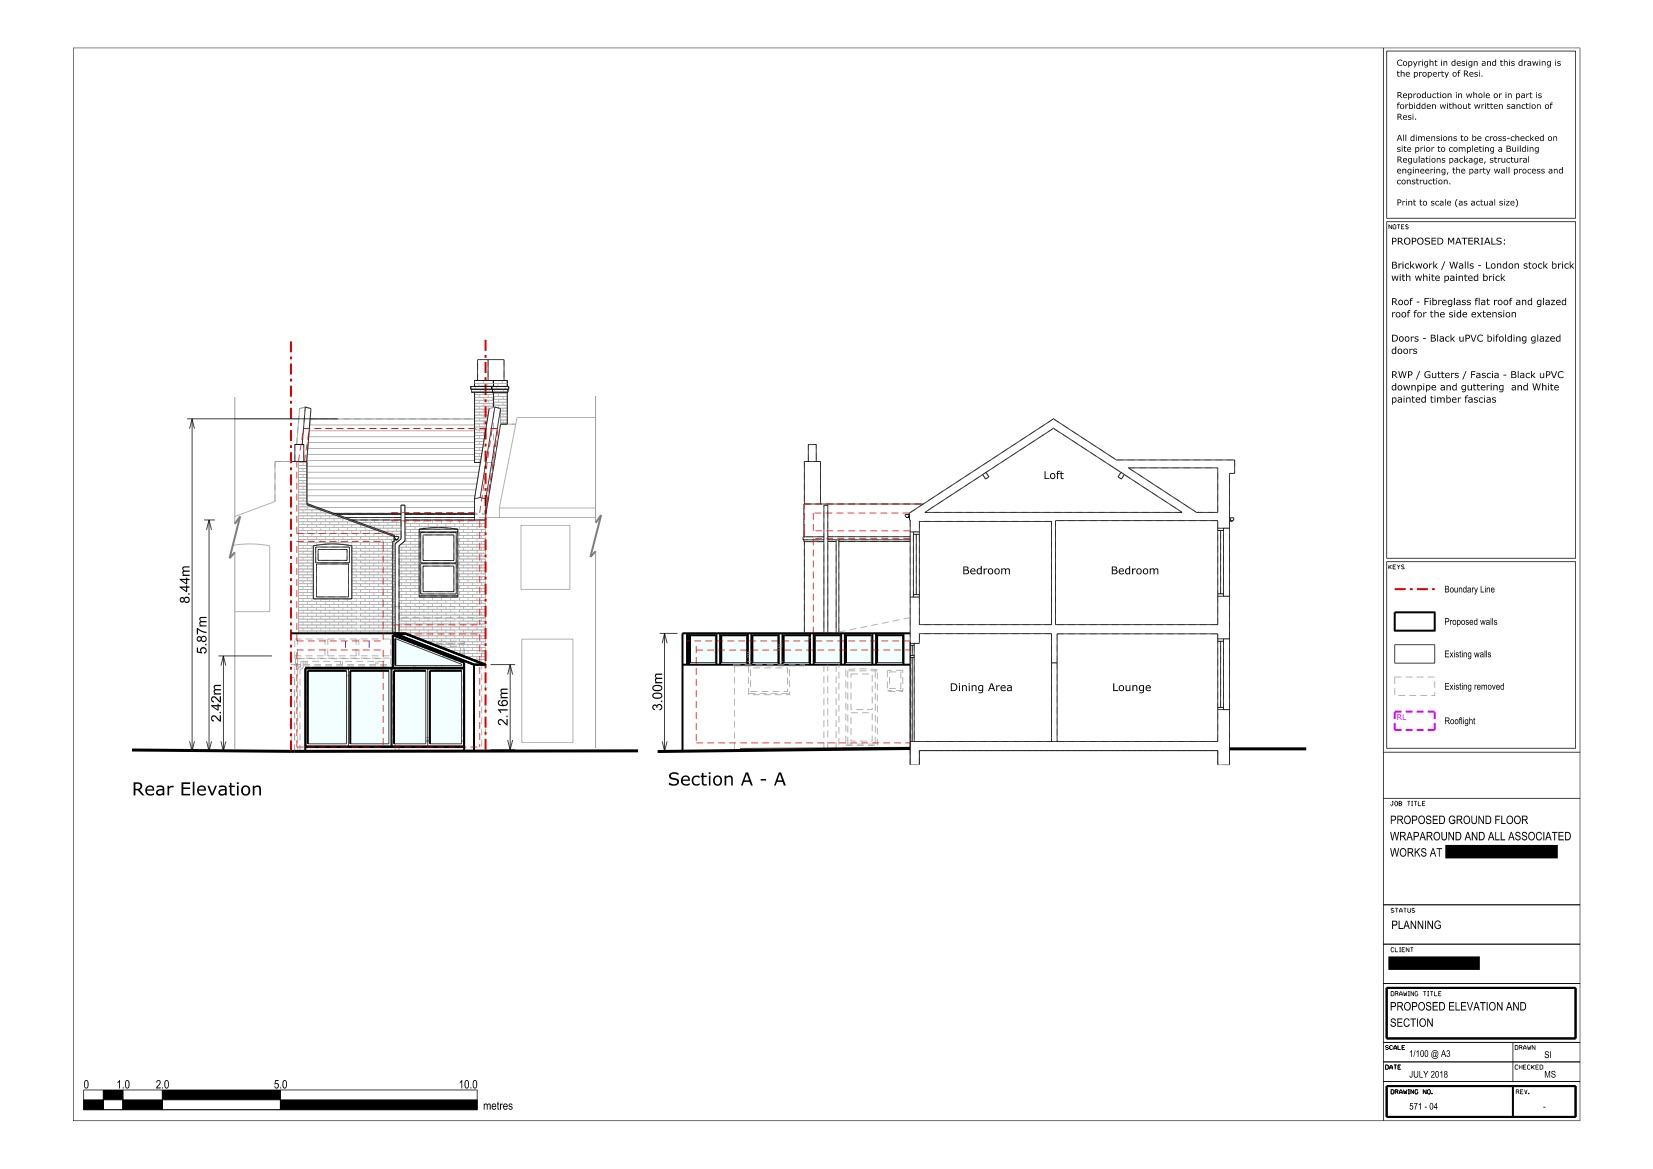 Architectural drawings    ground floor elevations